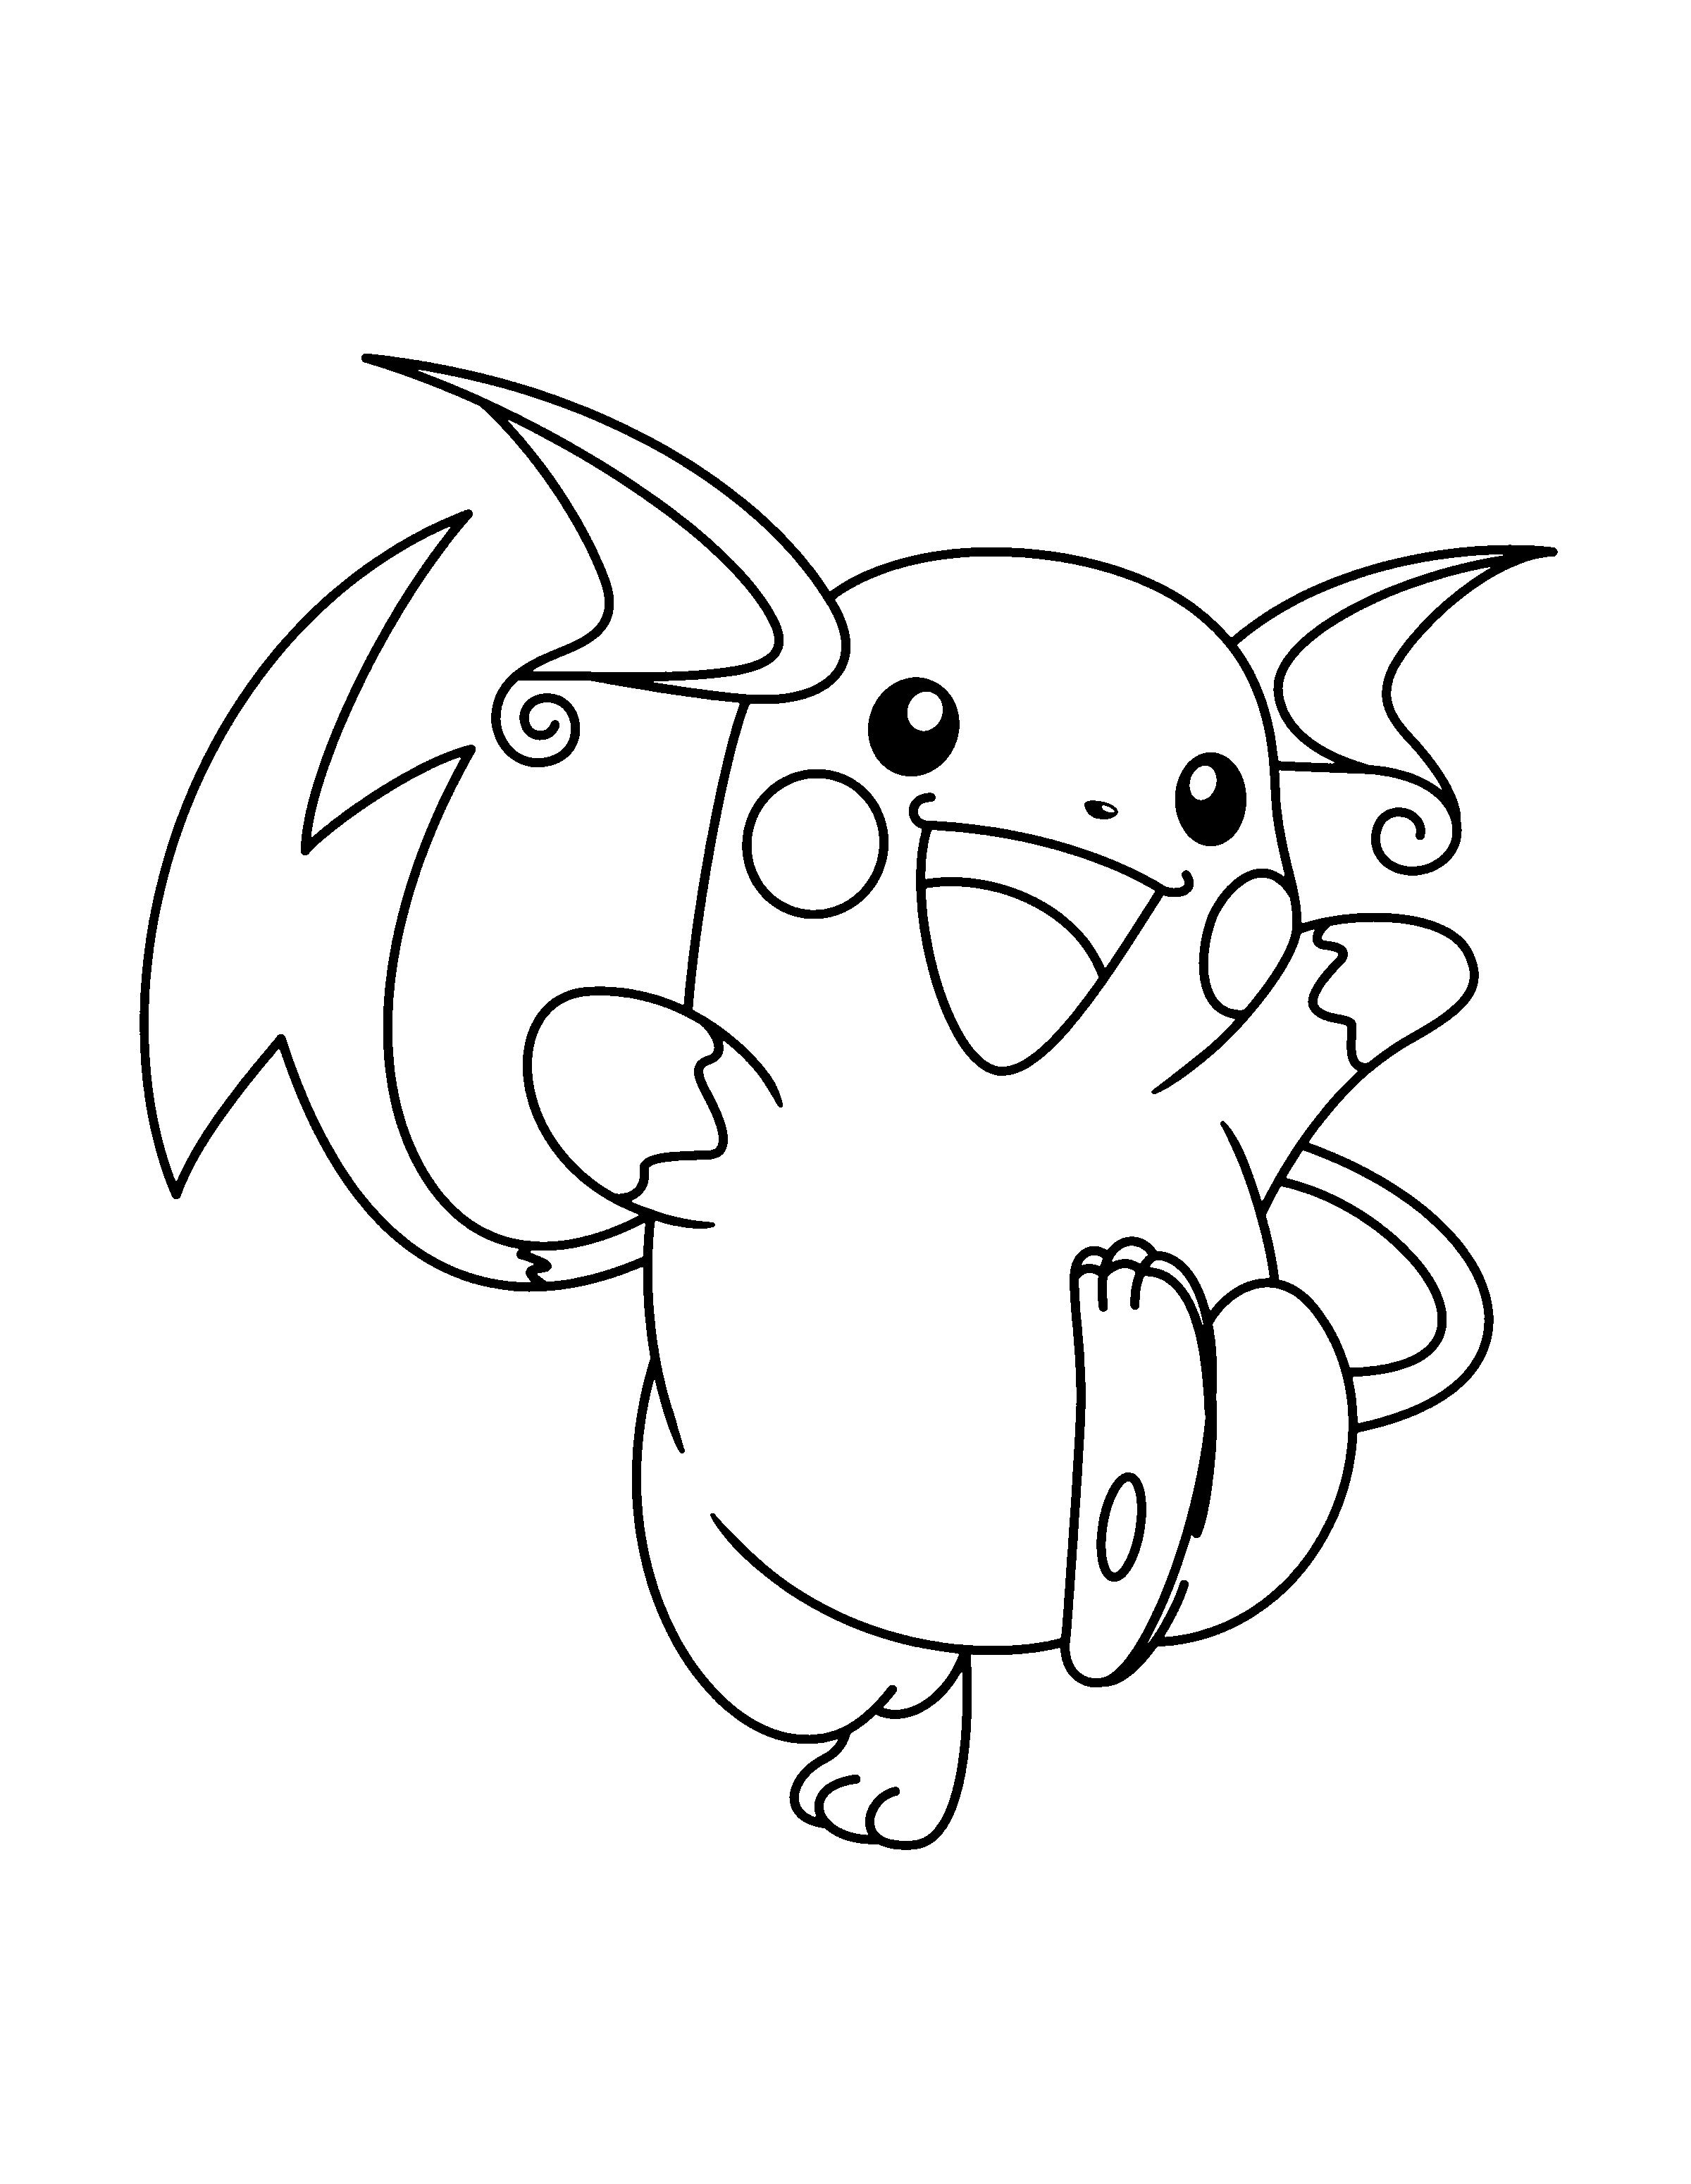 12 Divers Coloriage Raichu Images Coloriage Pokemon Coloriage